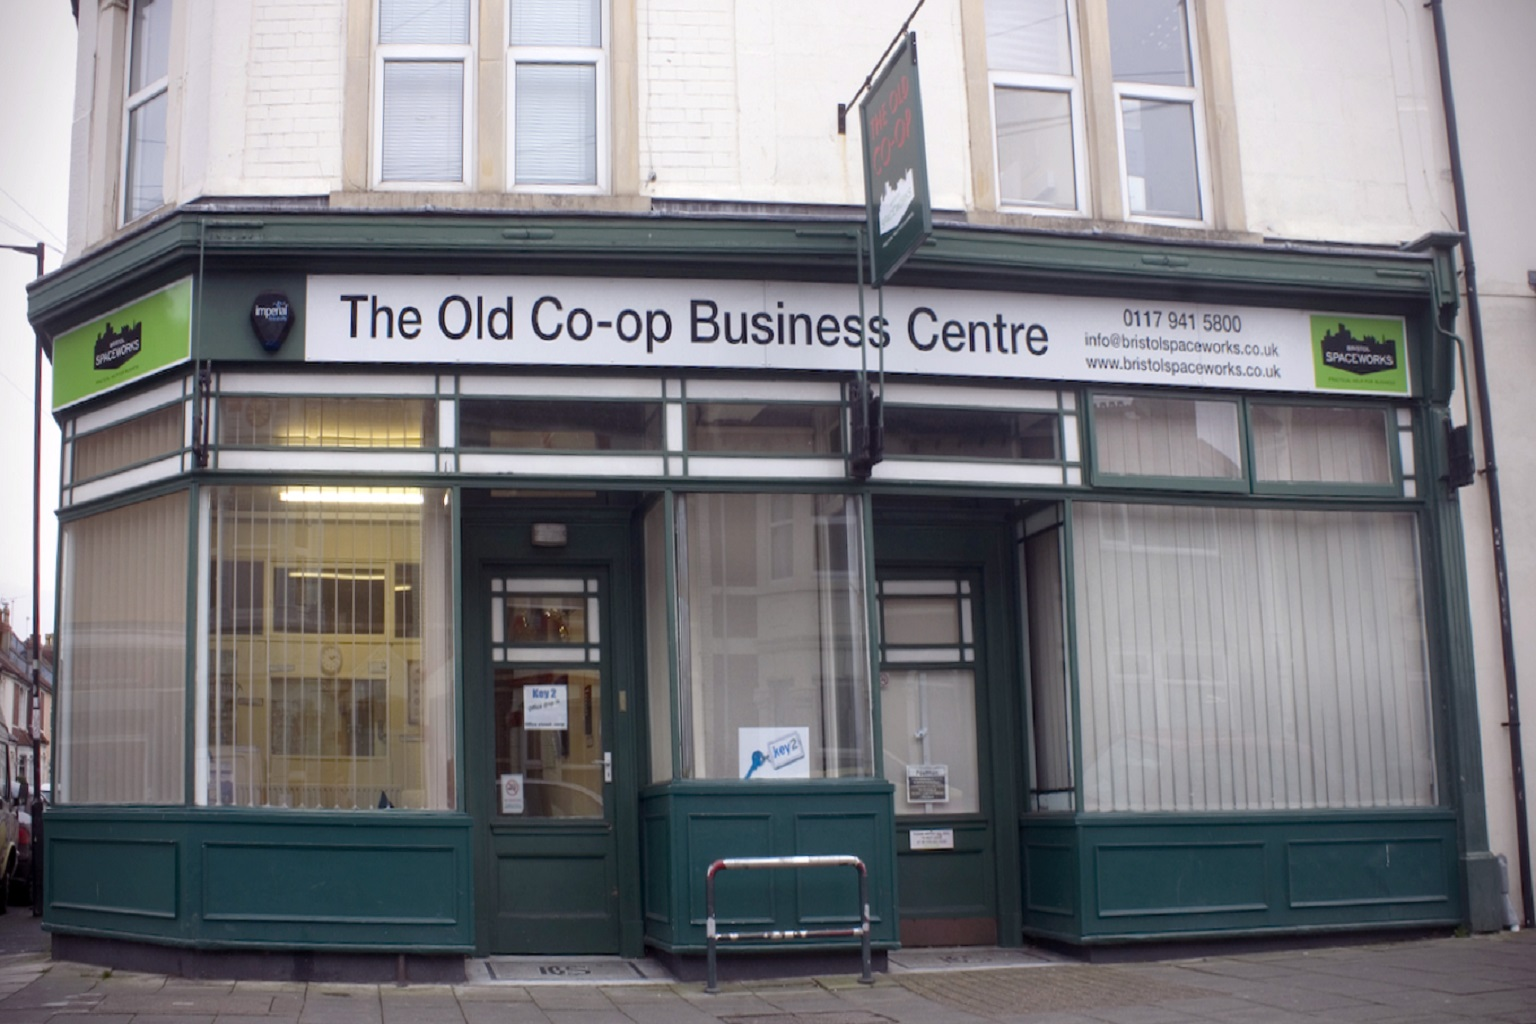 The Old Co-op Business Centre